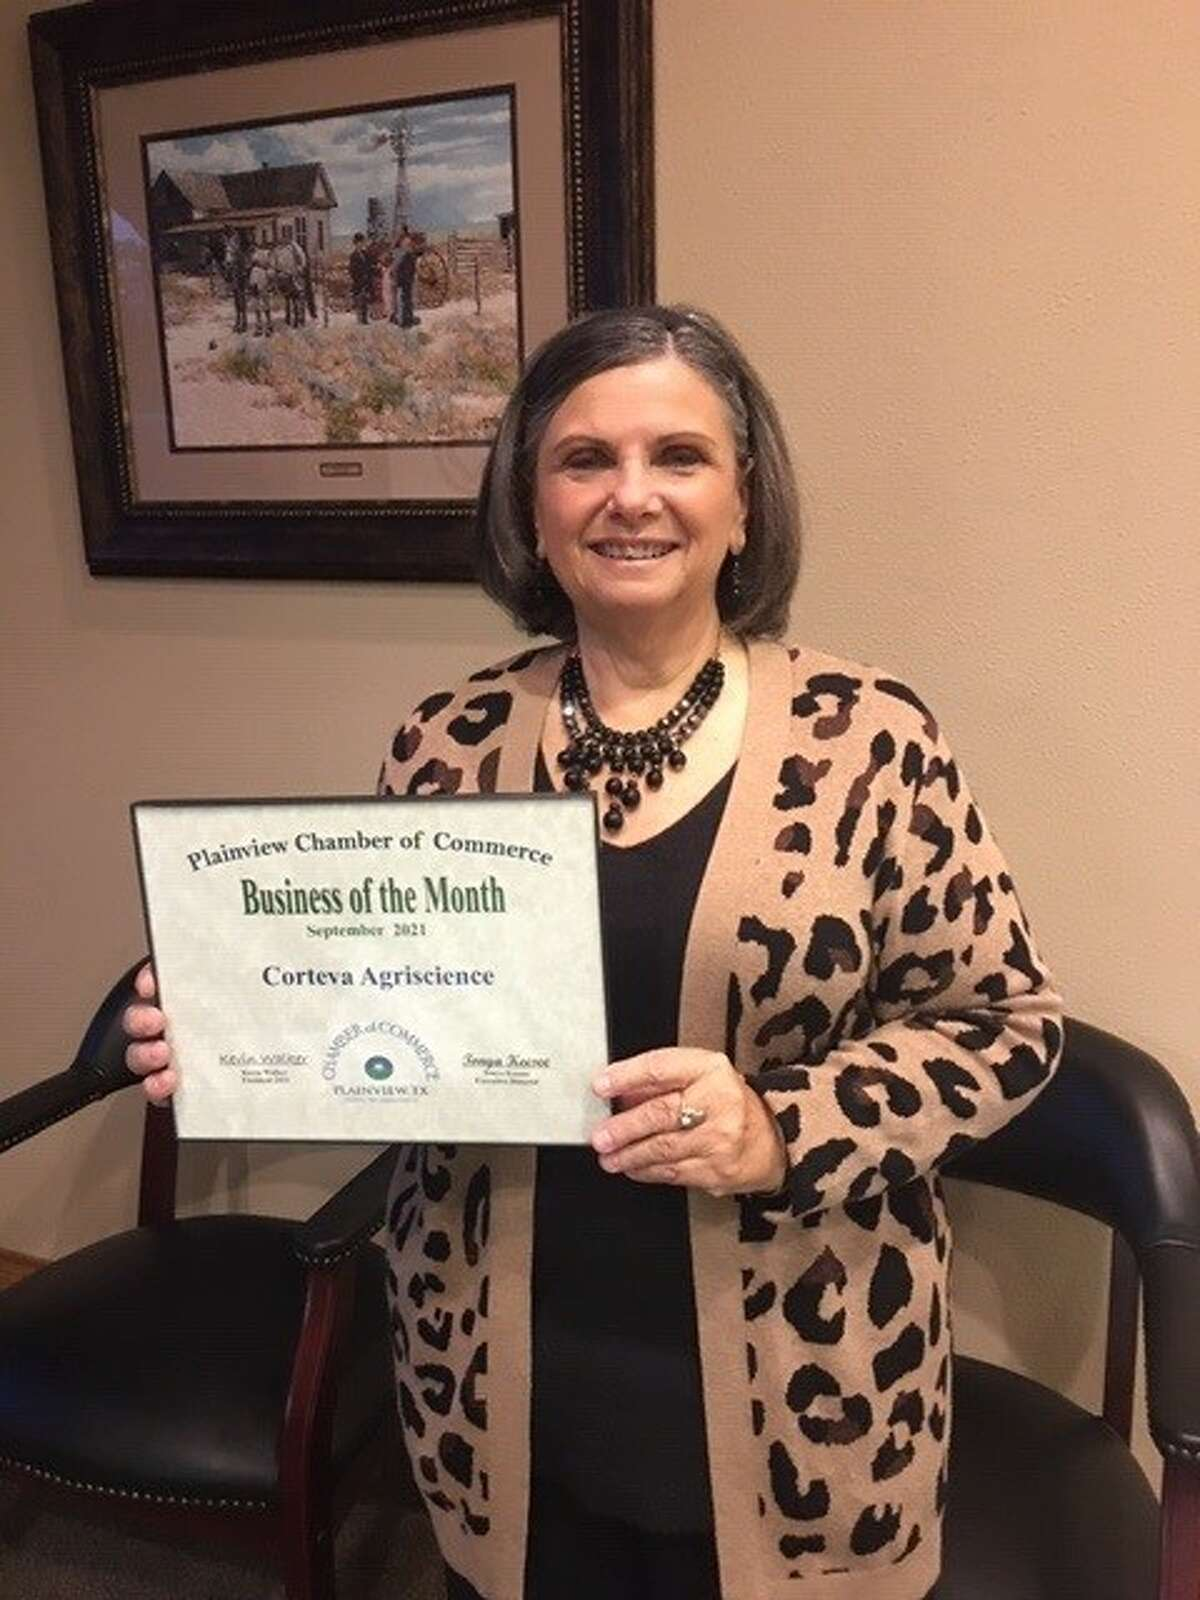 The Plainview Chamber of Commerce recognized Corteva agriscience Tuesday as September Business of the Month. Renee Crane, administrative supervisor for the Plainview branch, was present to accept the recognition on behalf of the business.